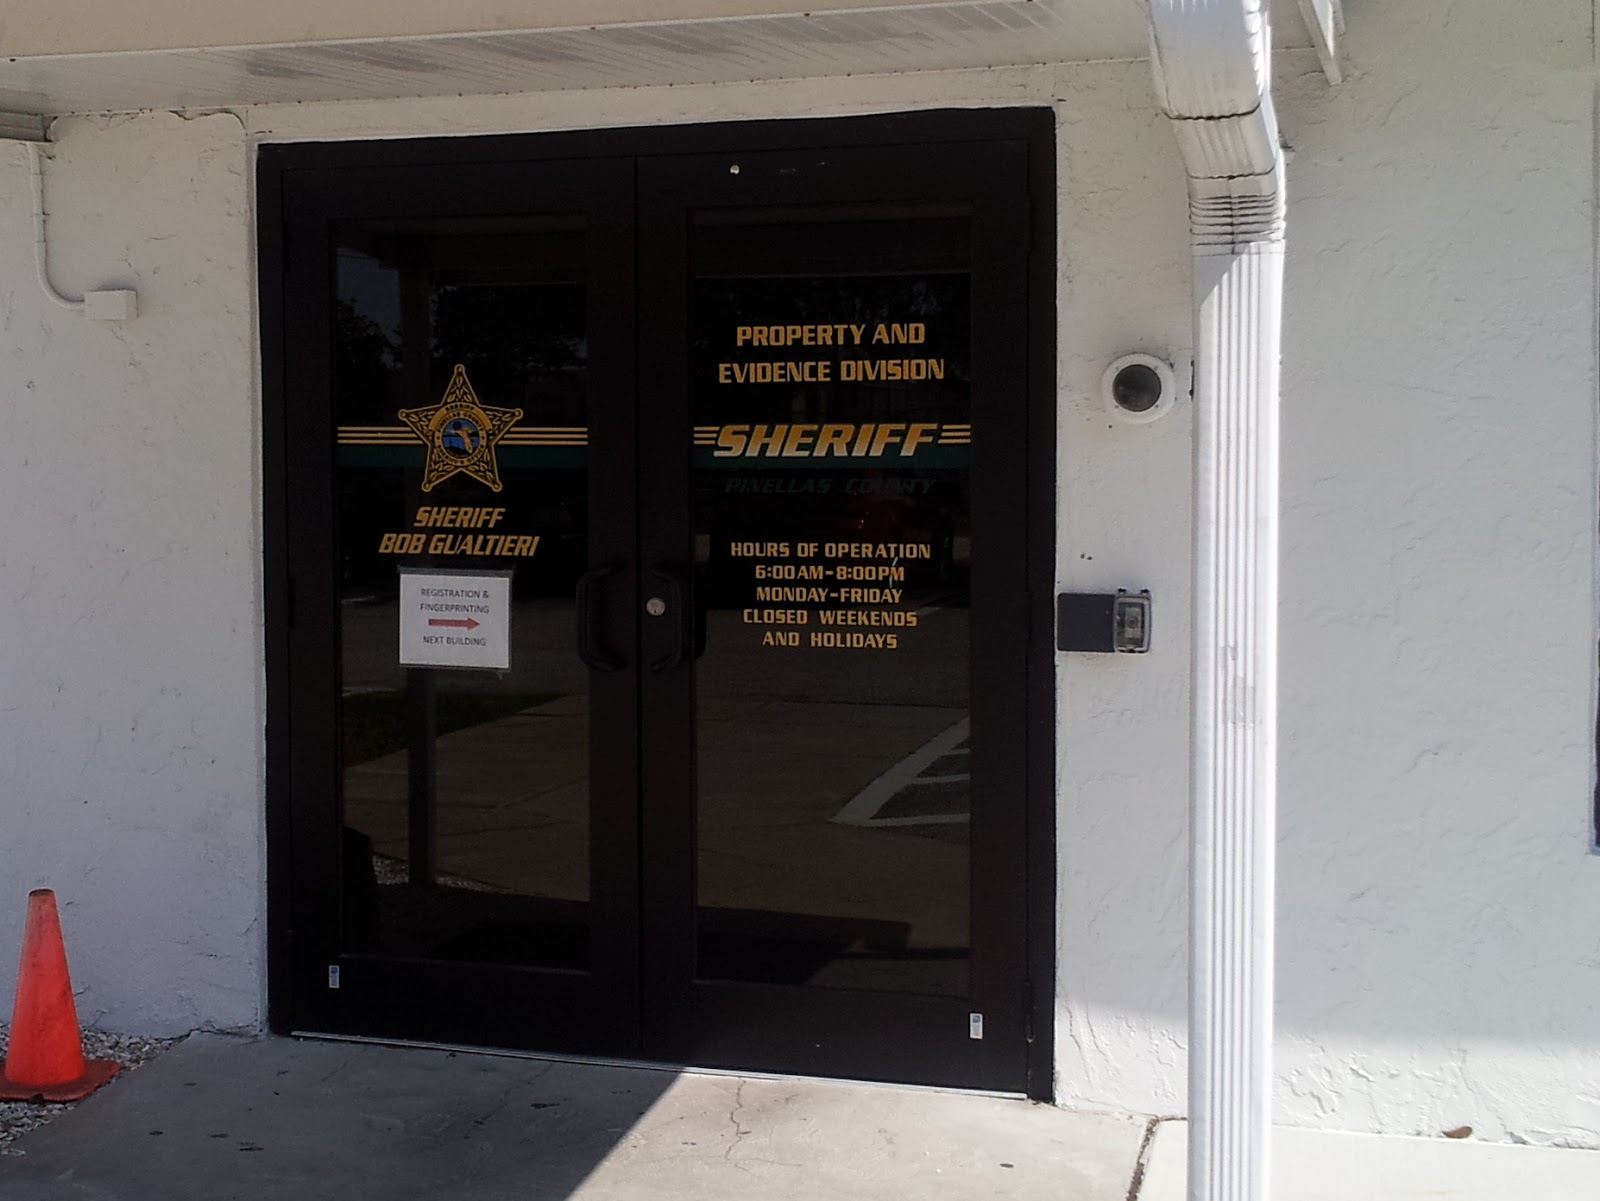 Pinellas County Sheriff Evidence Unit - Law Office of W F